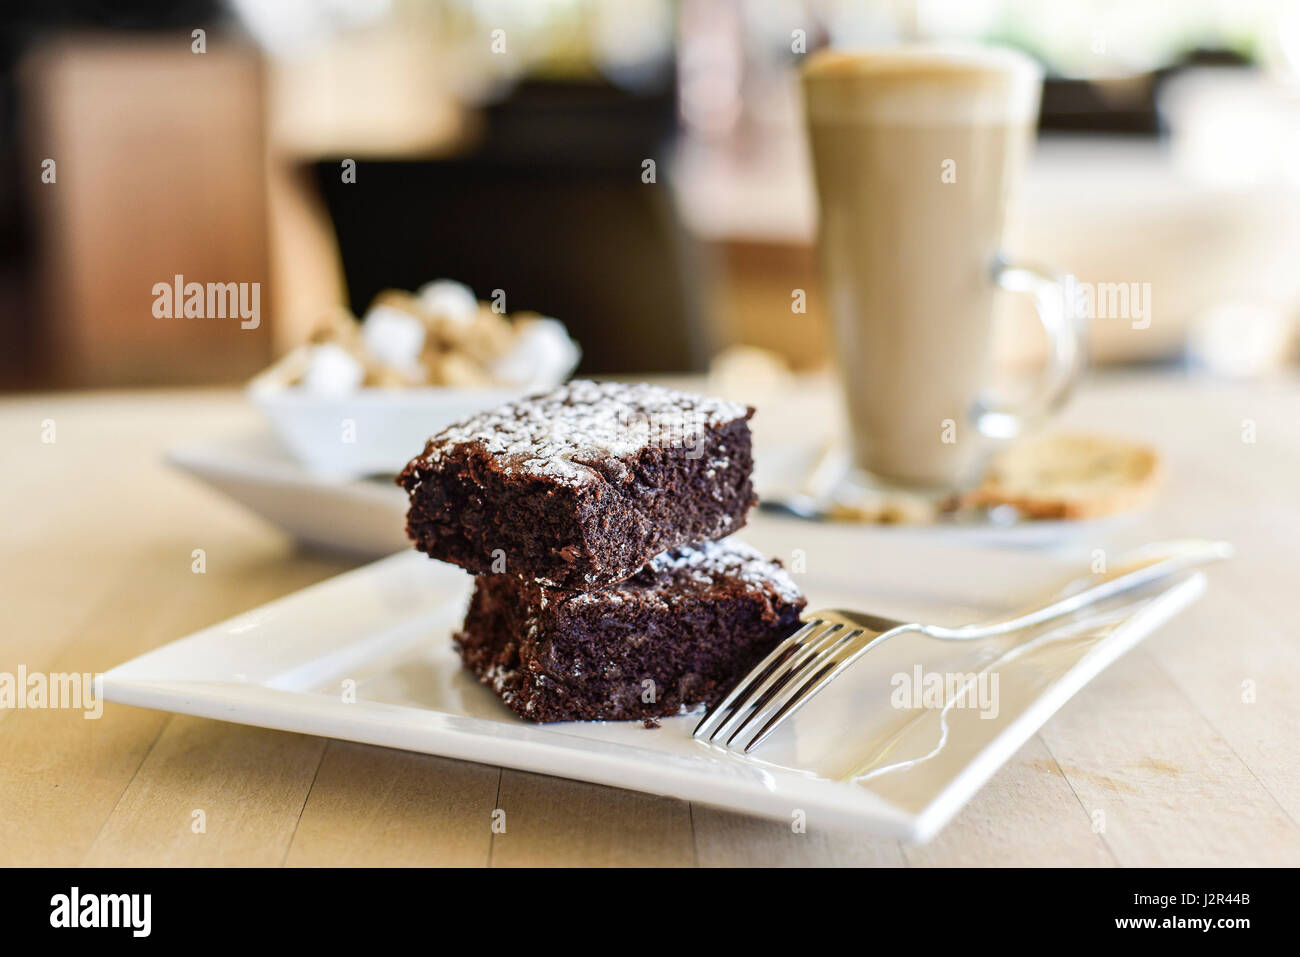 La nourriture deux brownies au chocolat au lait Dessert Sweet Treat brownies au chocolat cuisson au four plaque Photo Stock